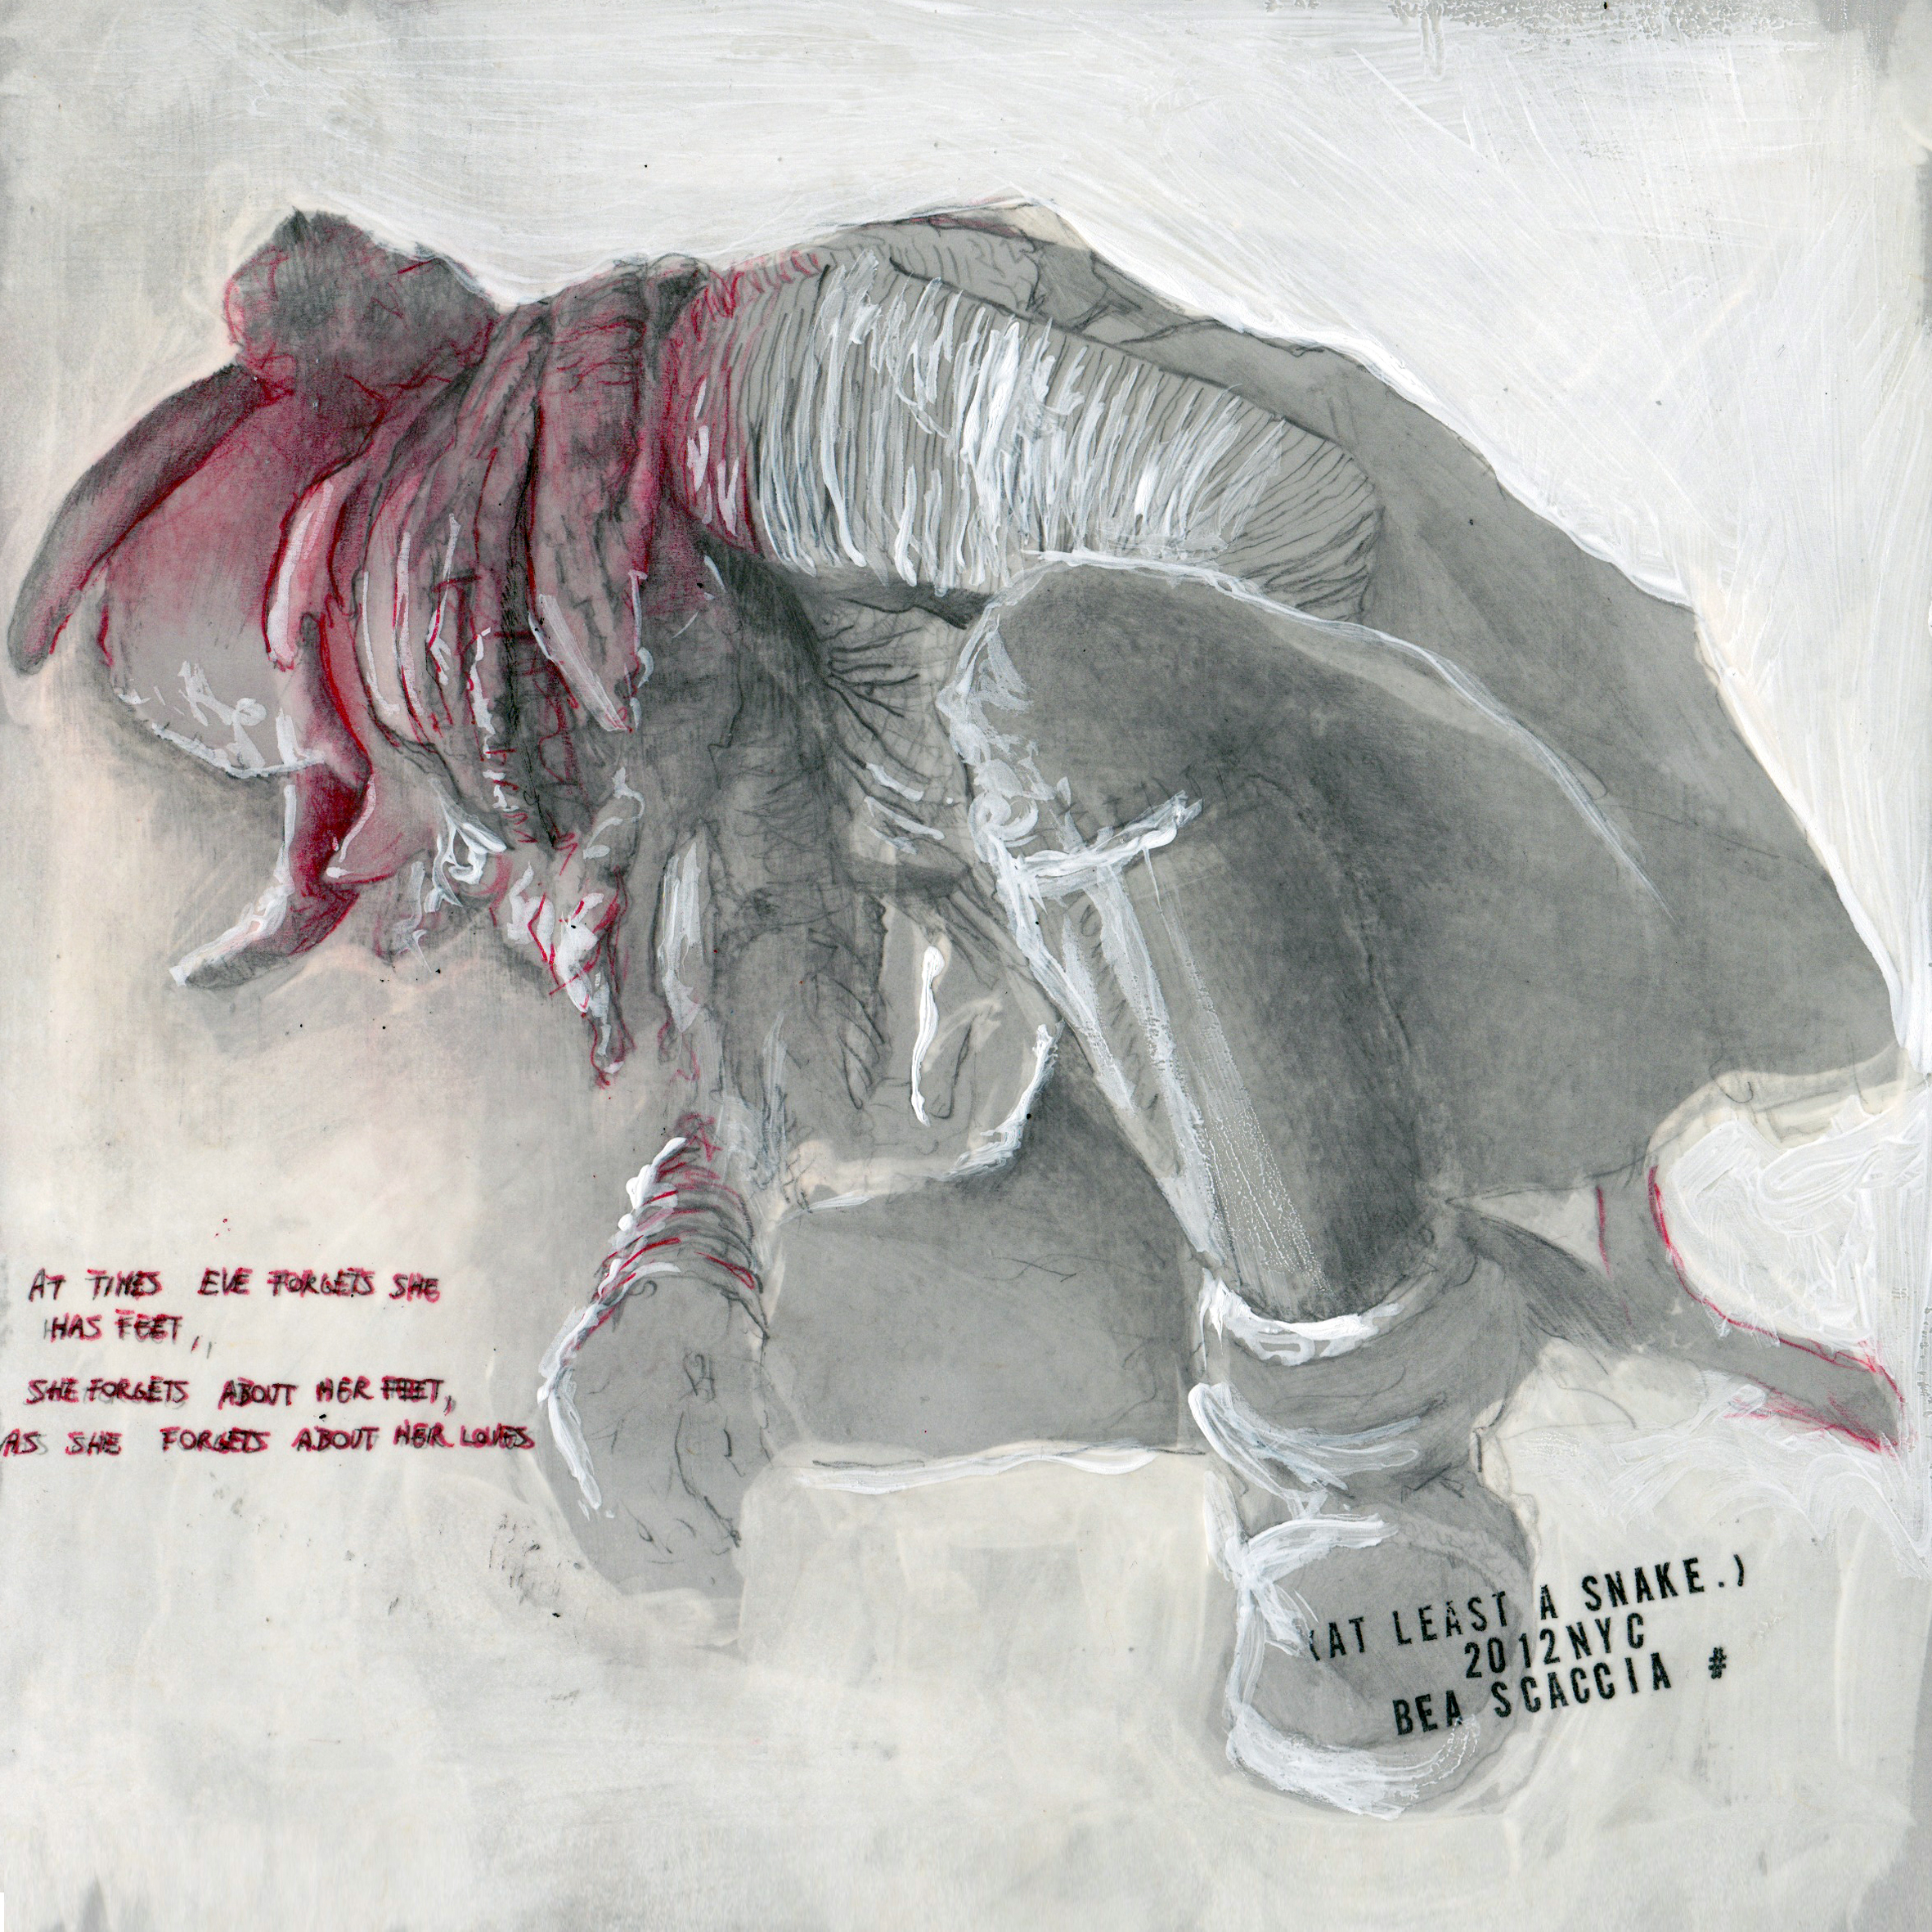 At least a snake n. 6/12 2012  pencil, pastels, chalk and wax on paper  8x8 inches